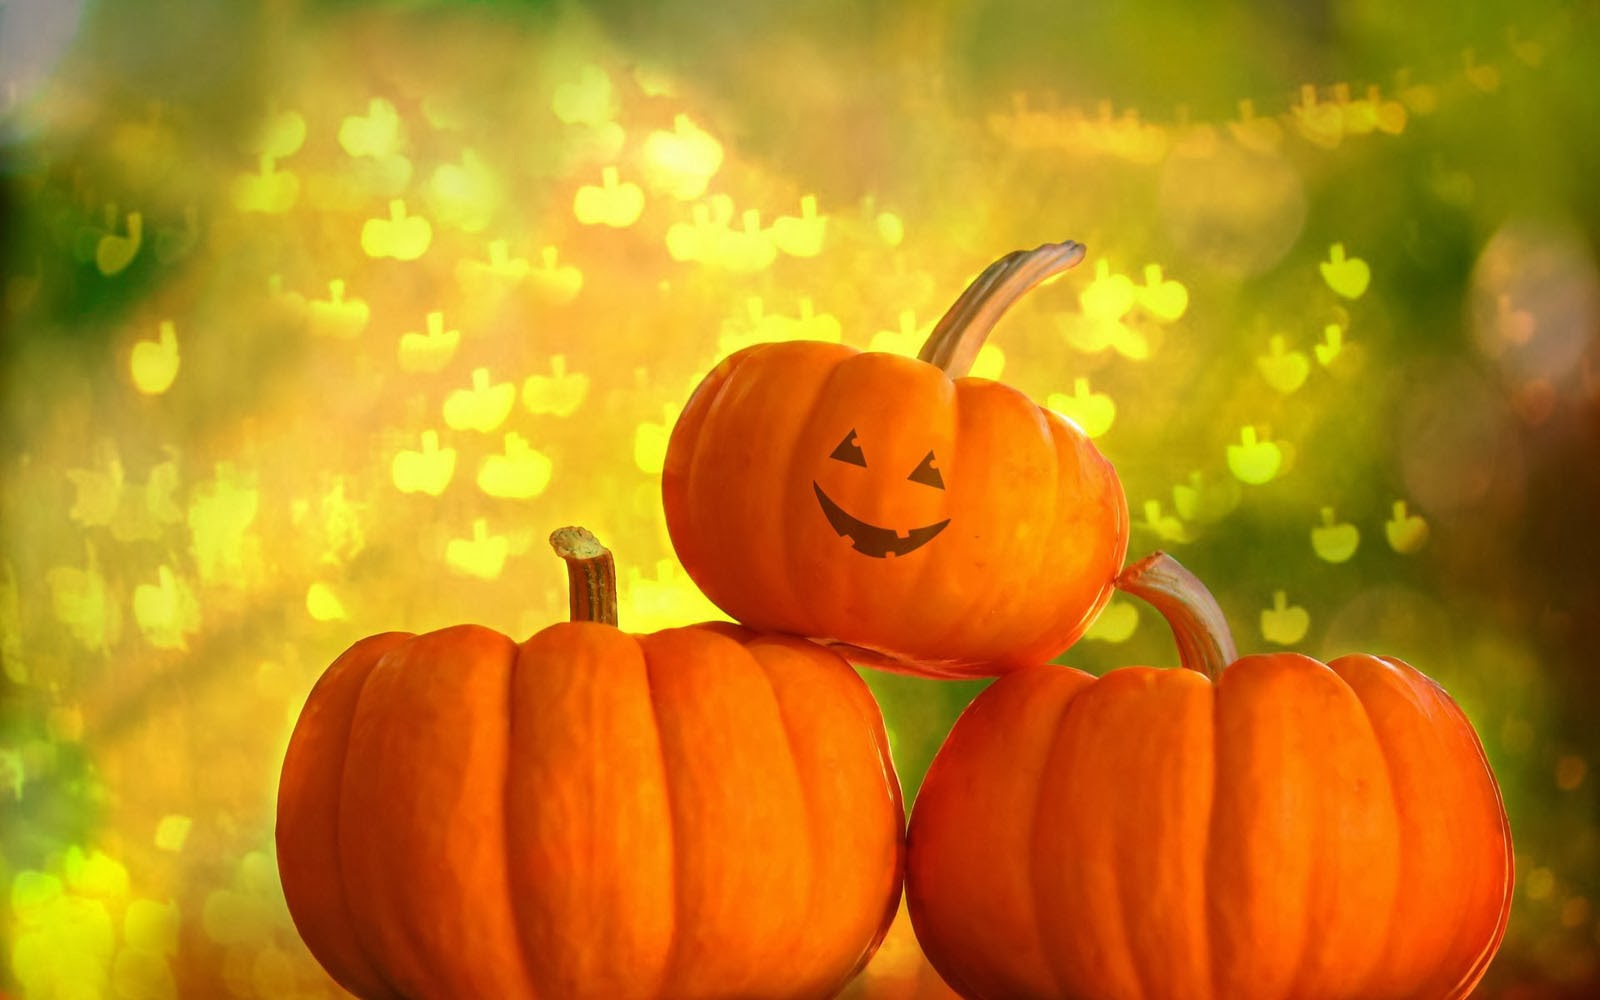 Pumpkin Wallpapers Backgrounds Photos Images andPictures for 1600x1000